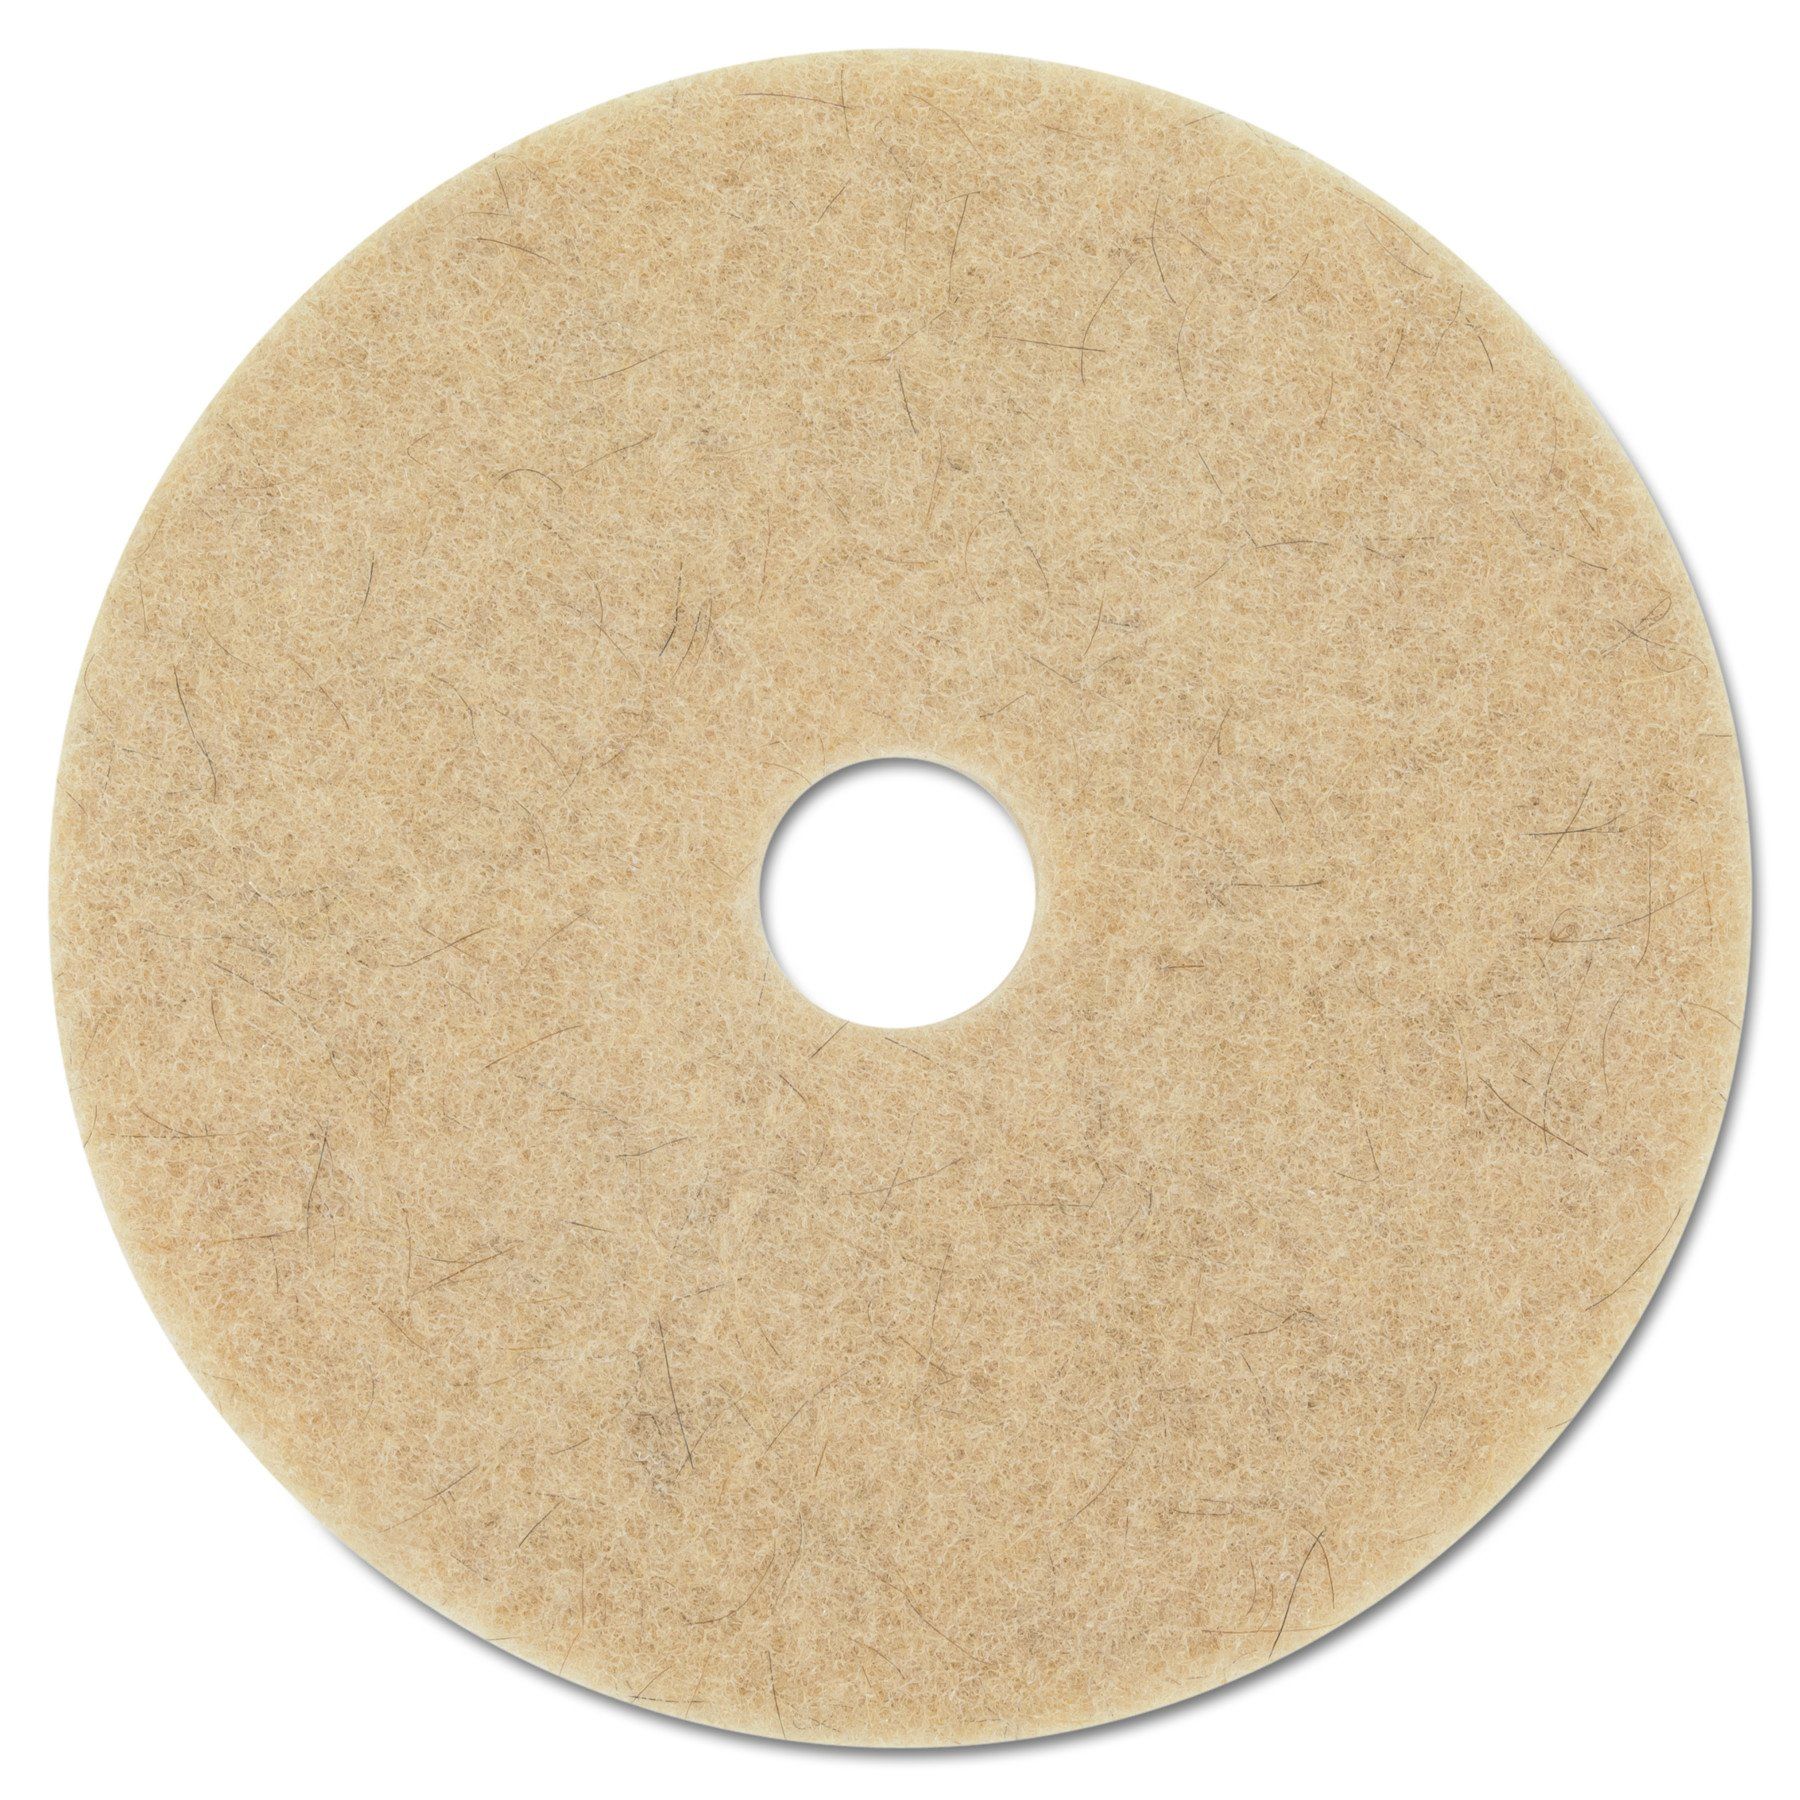 3M MCO 20317 Ultra High-Speed Natural Blend Floor Burnishing Pads, 27'', Tan (Pack of 5)